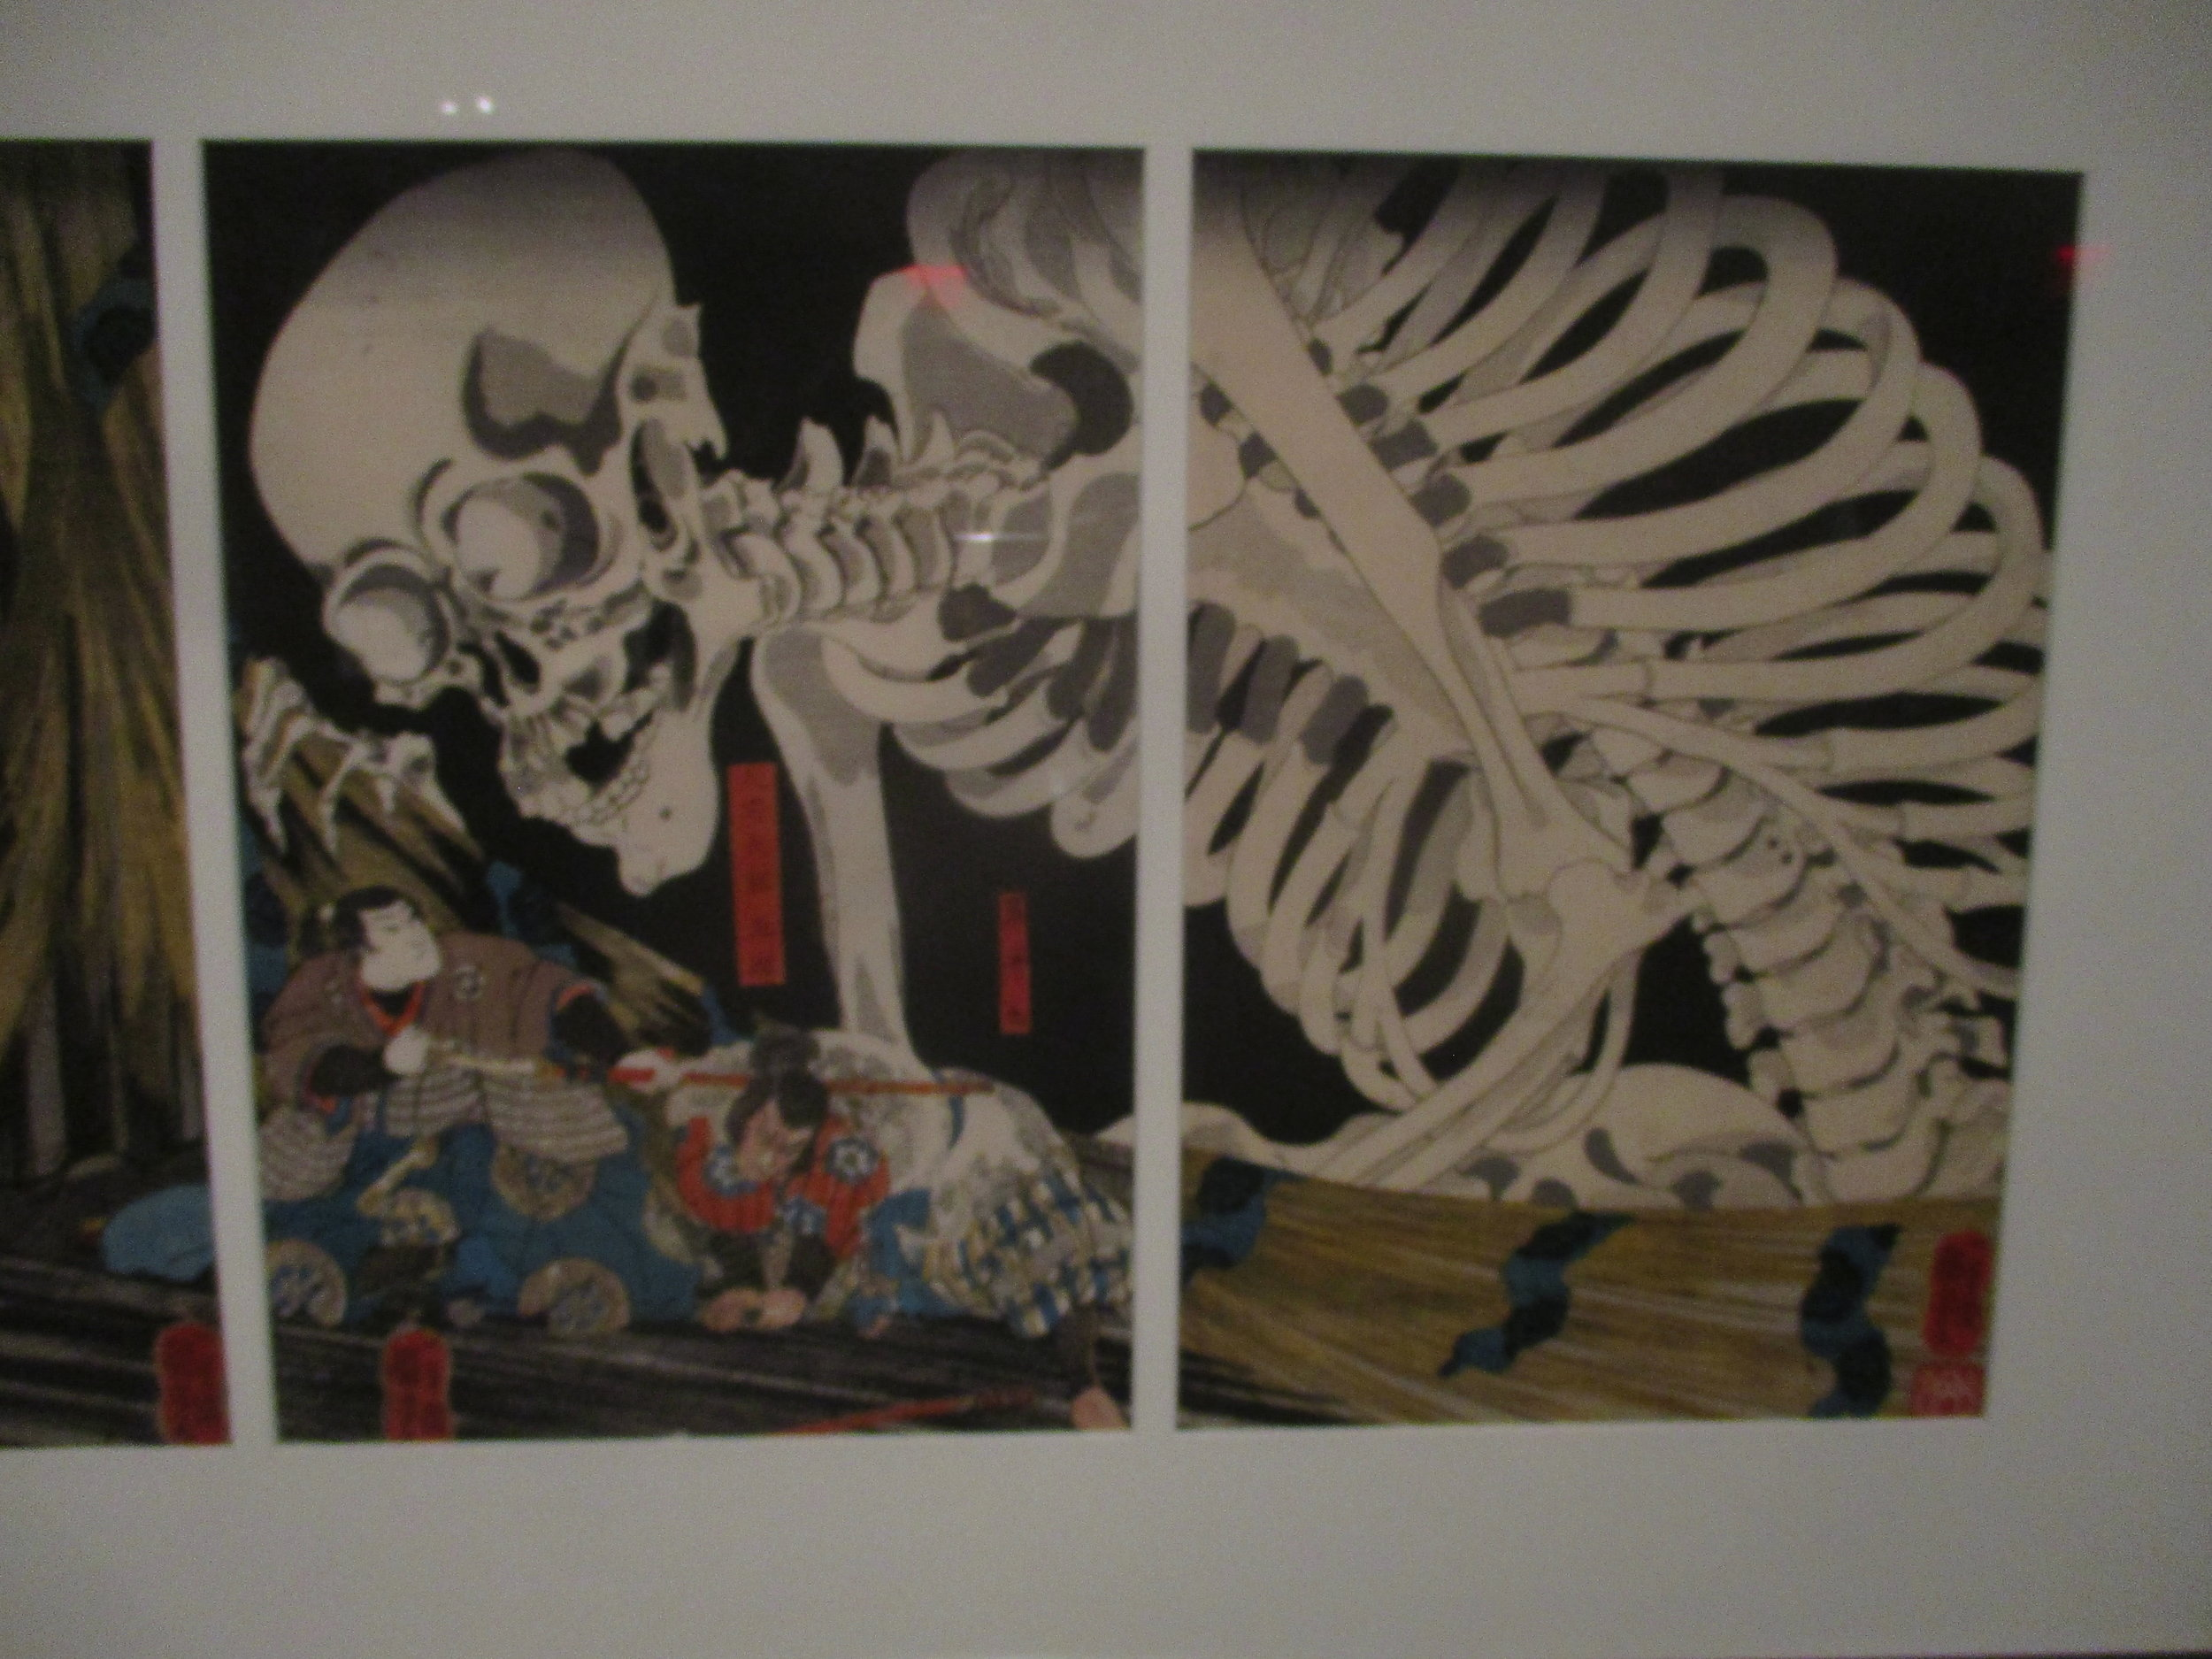 From a Japanese exhibition at the MFA a year ago.